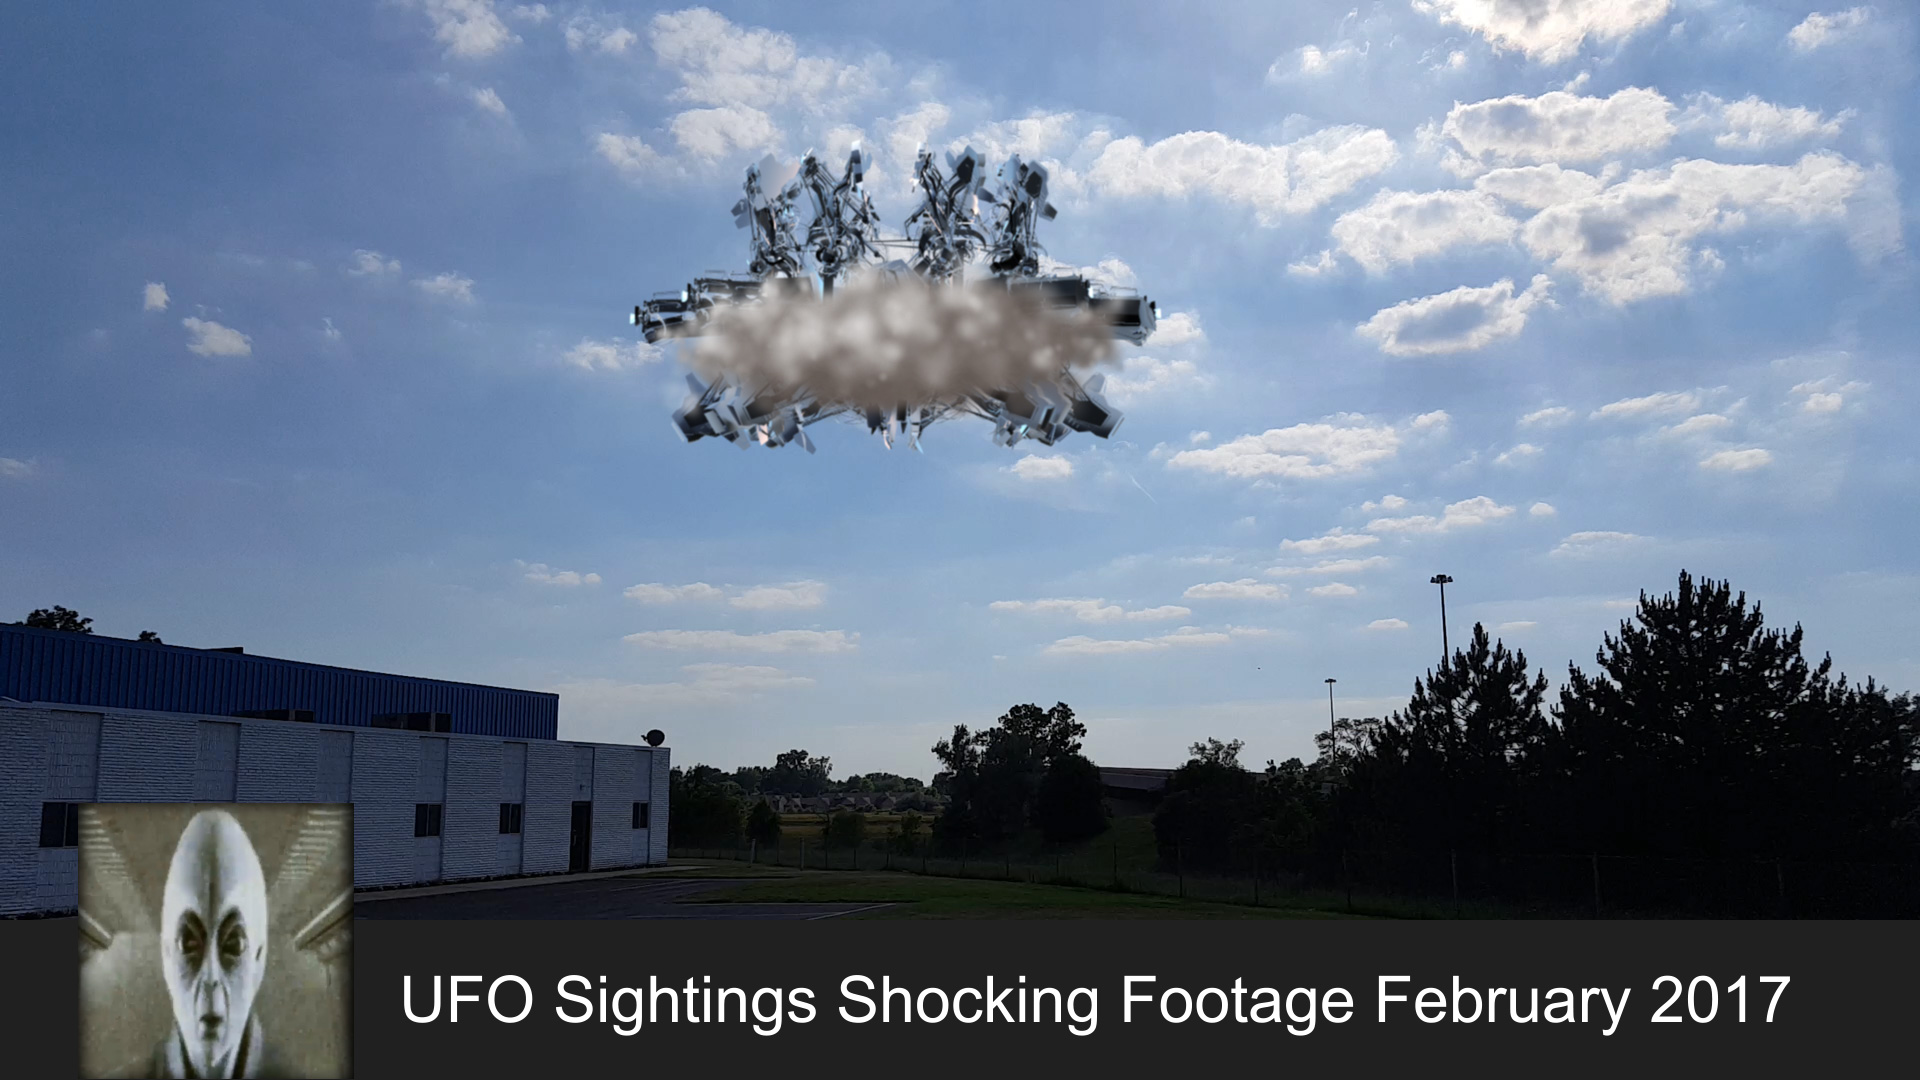 UFO Sightings Shocking Footage February 23rd 2017 ...